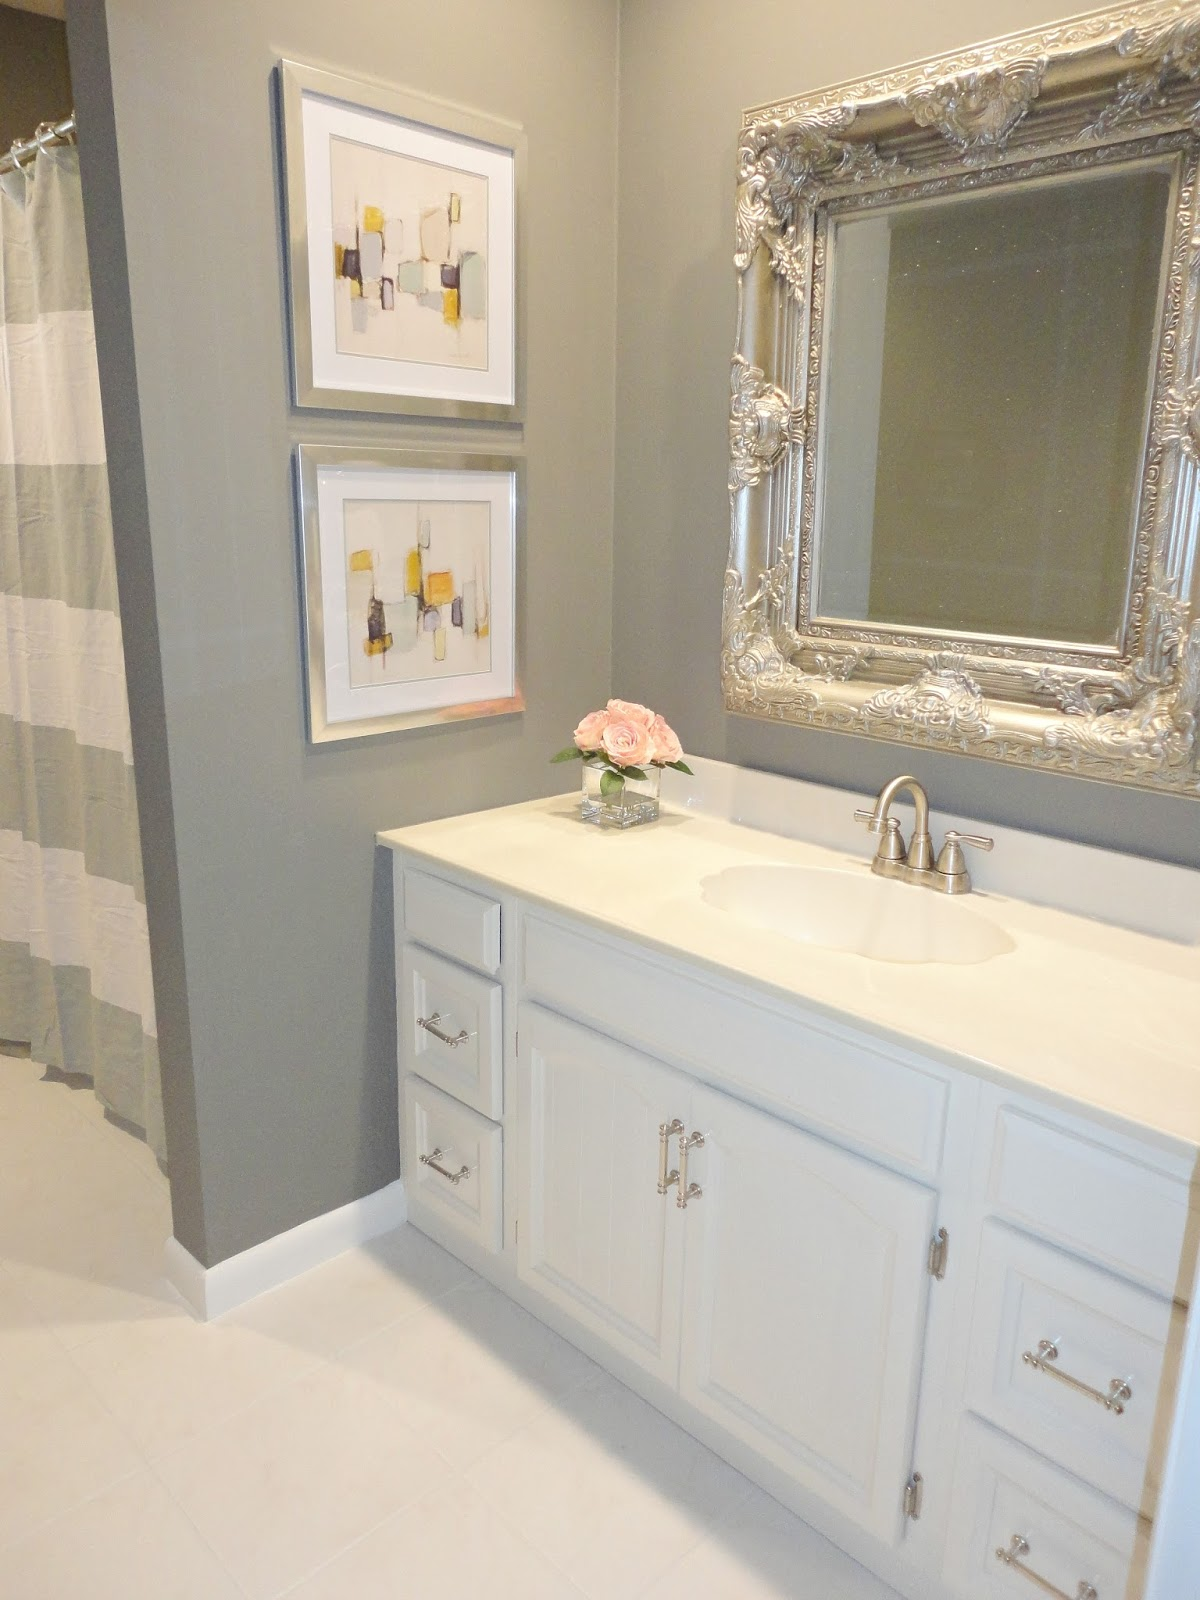 LiveLoveDIY DIY Bathroom Remodel On A Budget - Cheap diy bathroom remodel ideas